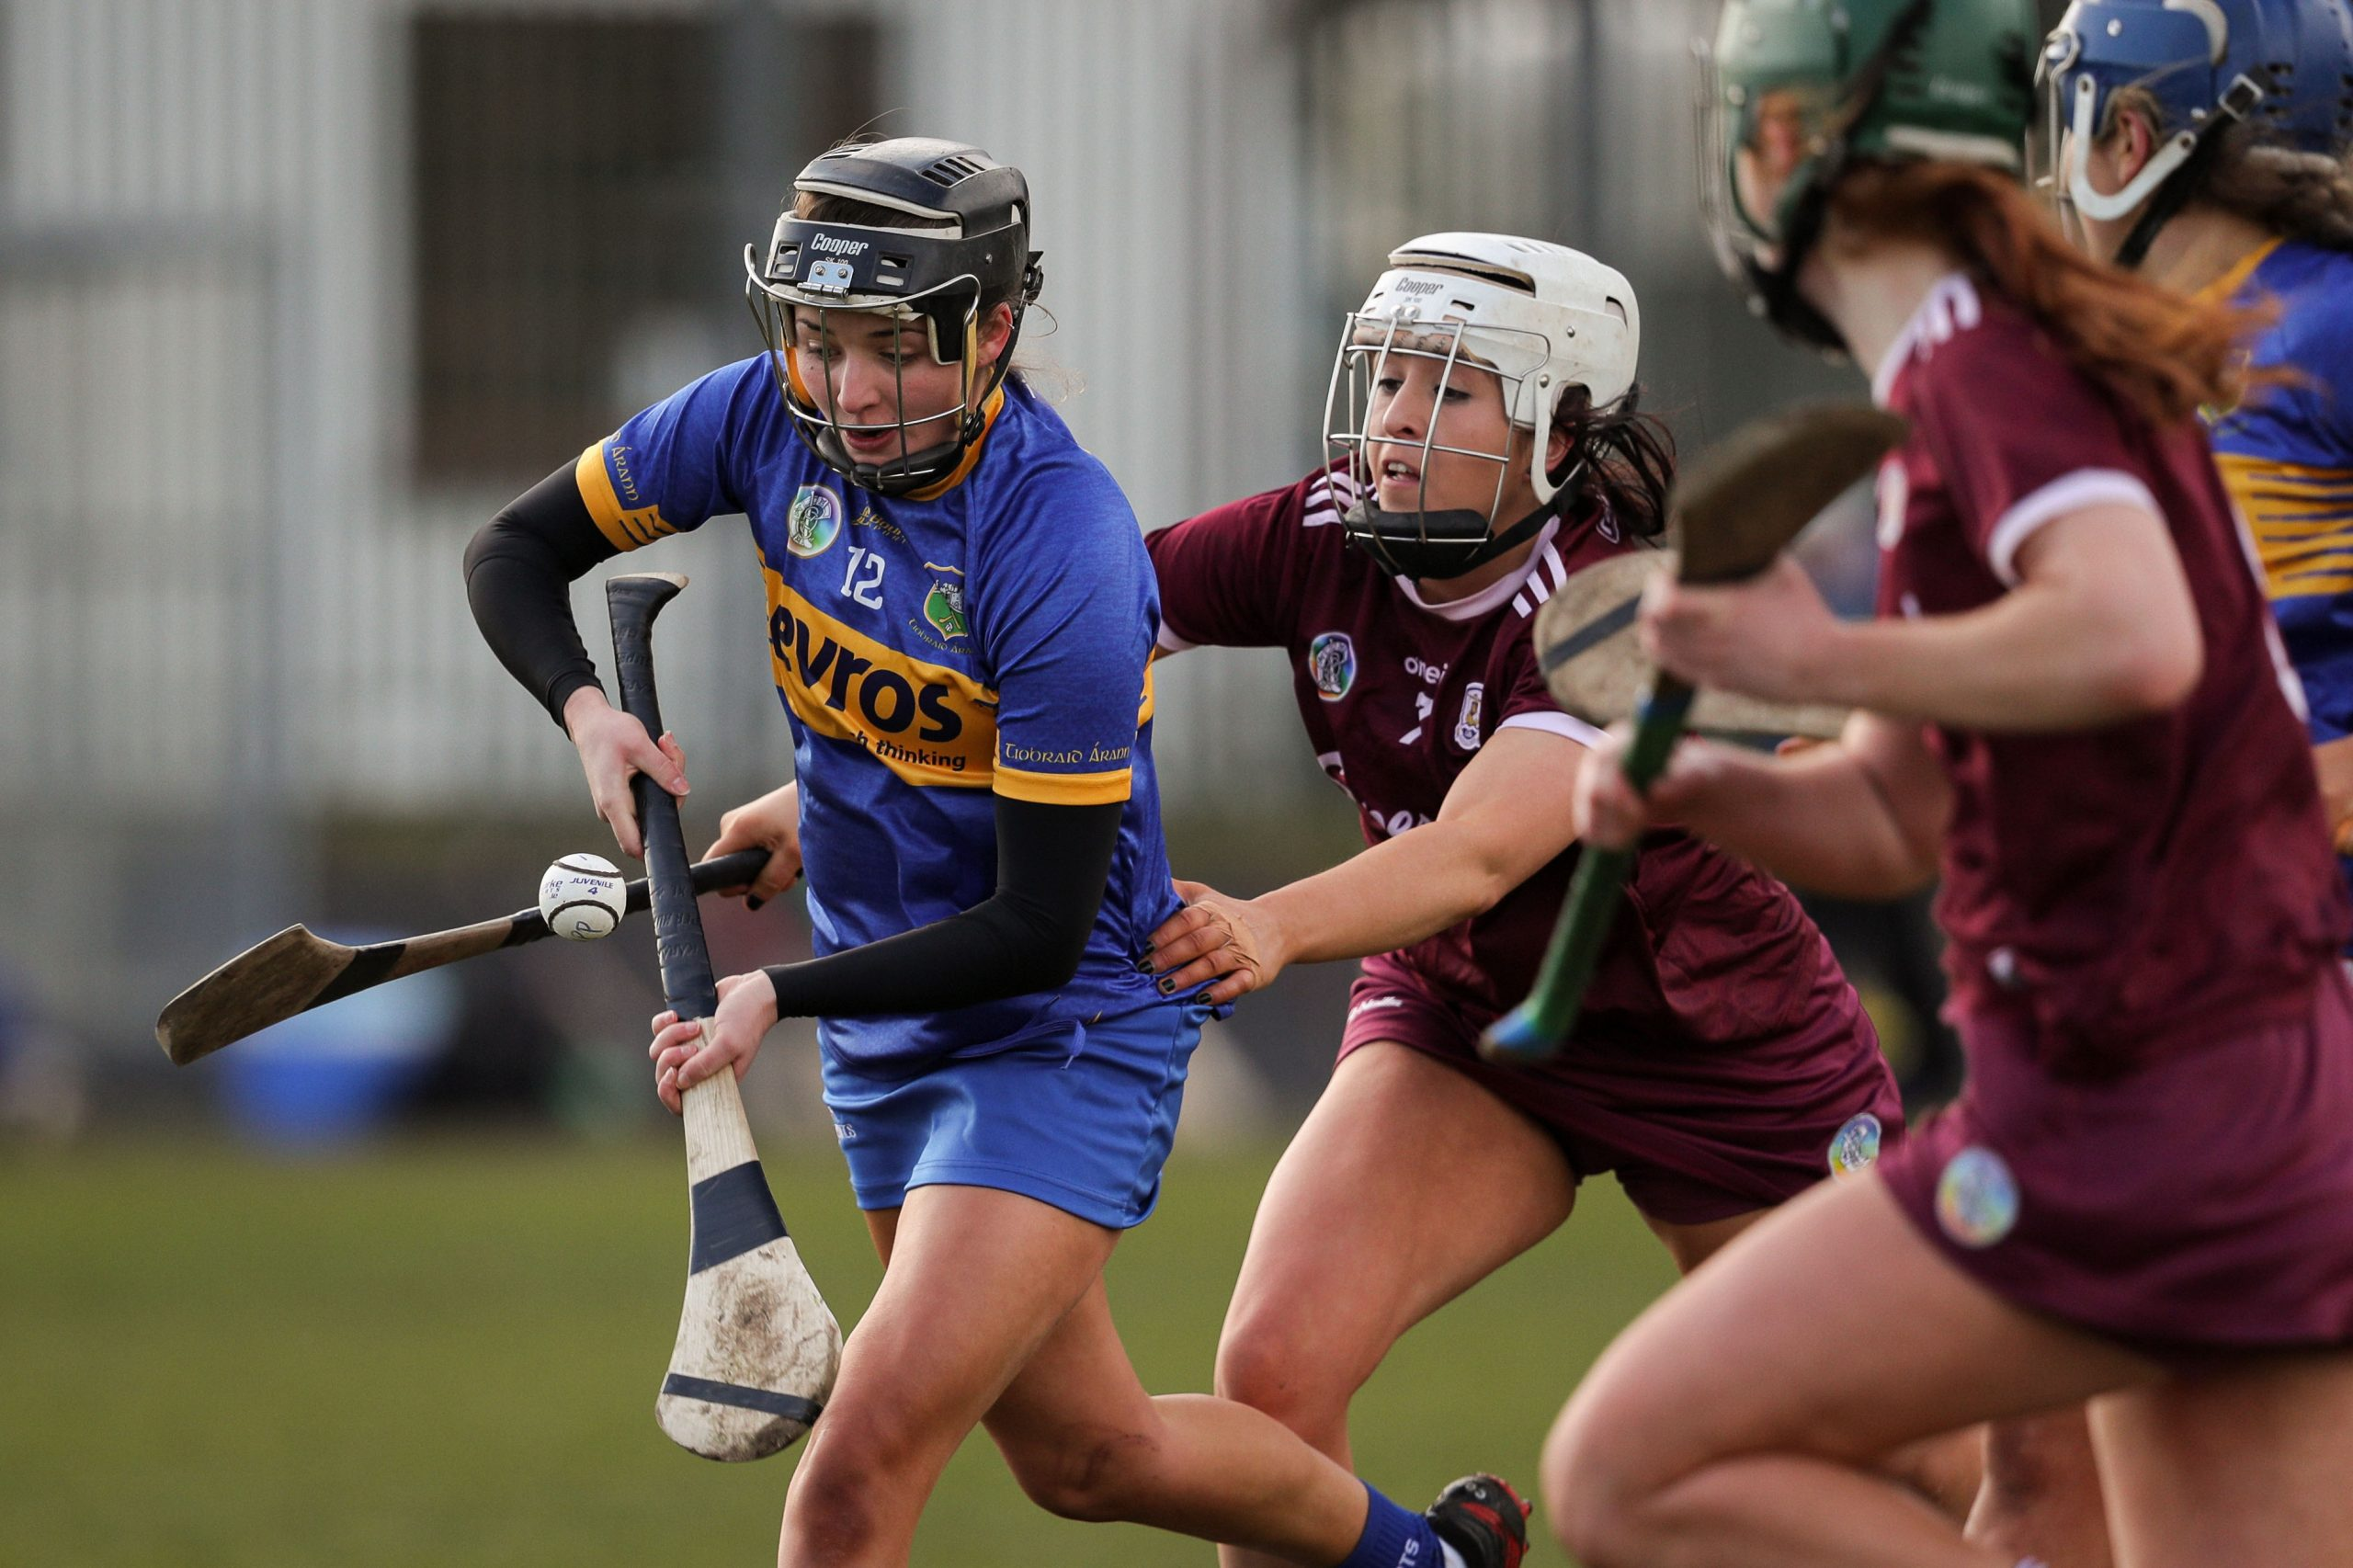 ROUND-UP: Tipp top Galway to book Final spot